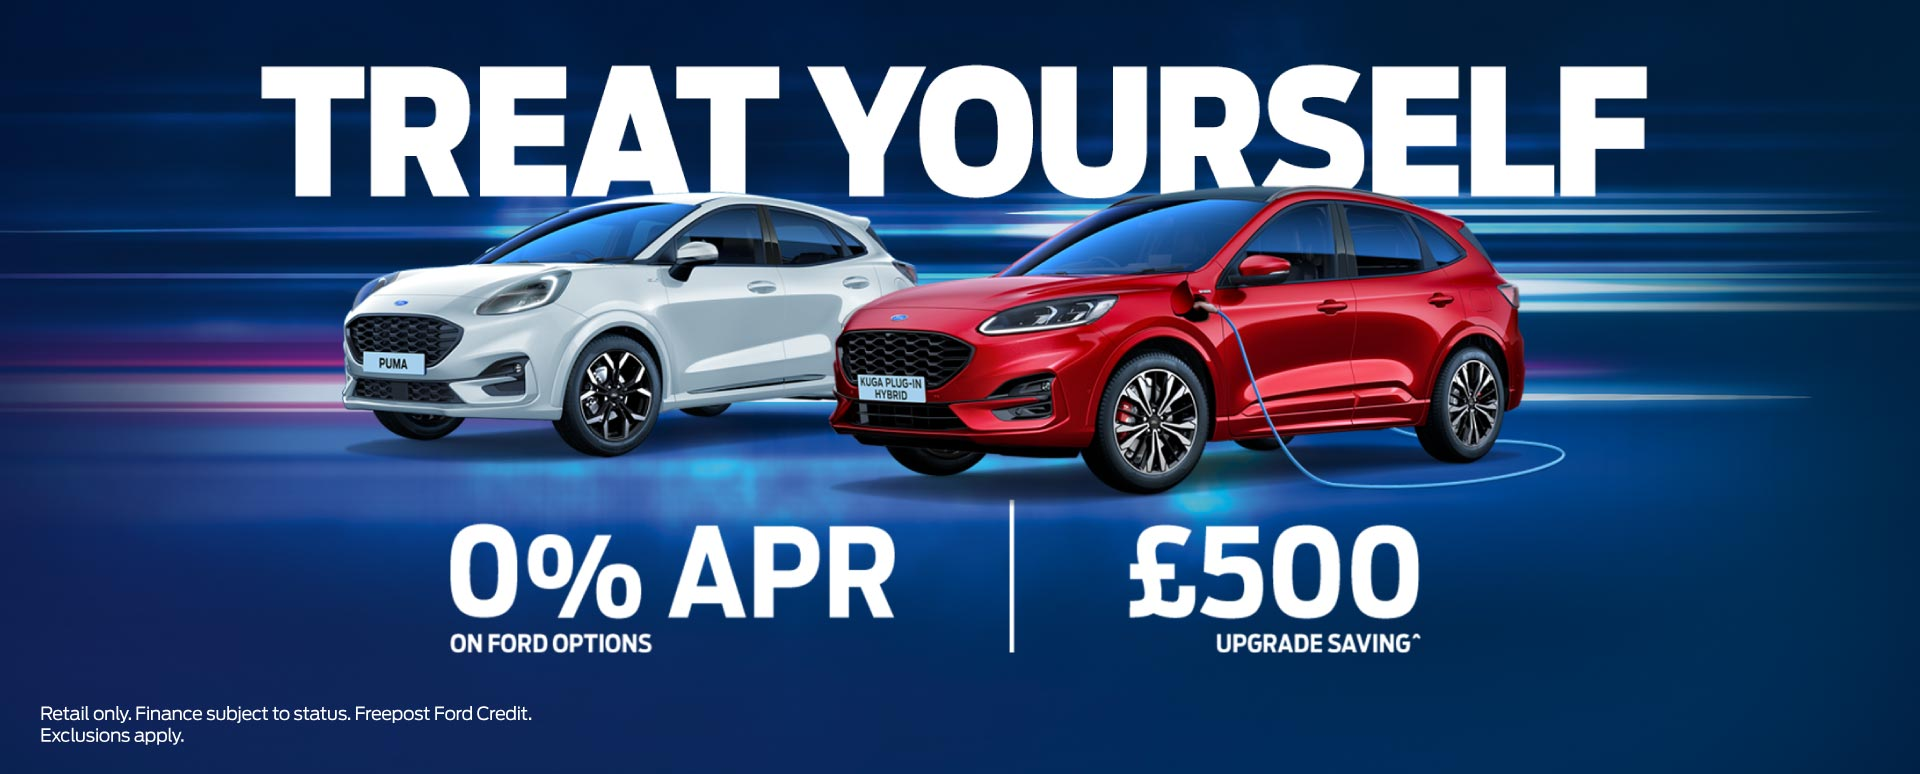 Ford Treat Yourself Promotion